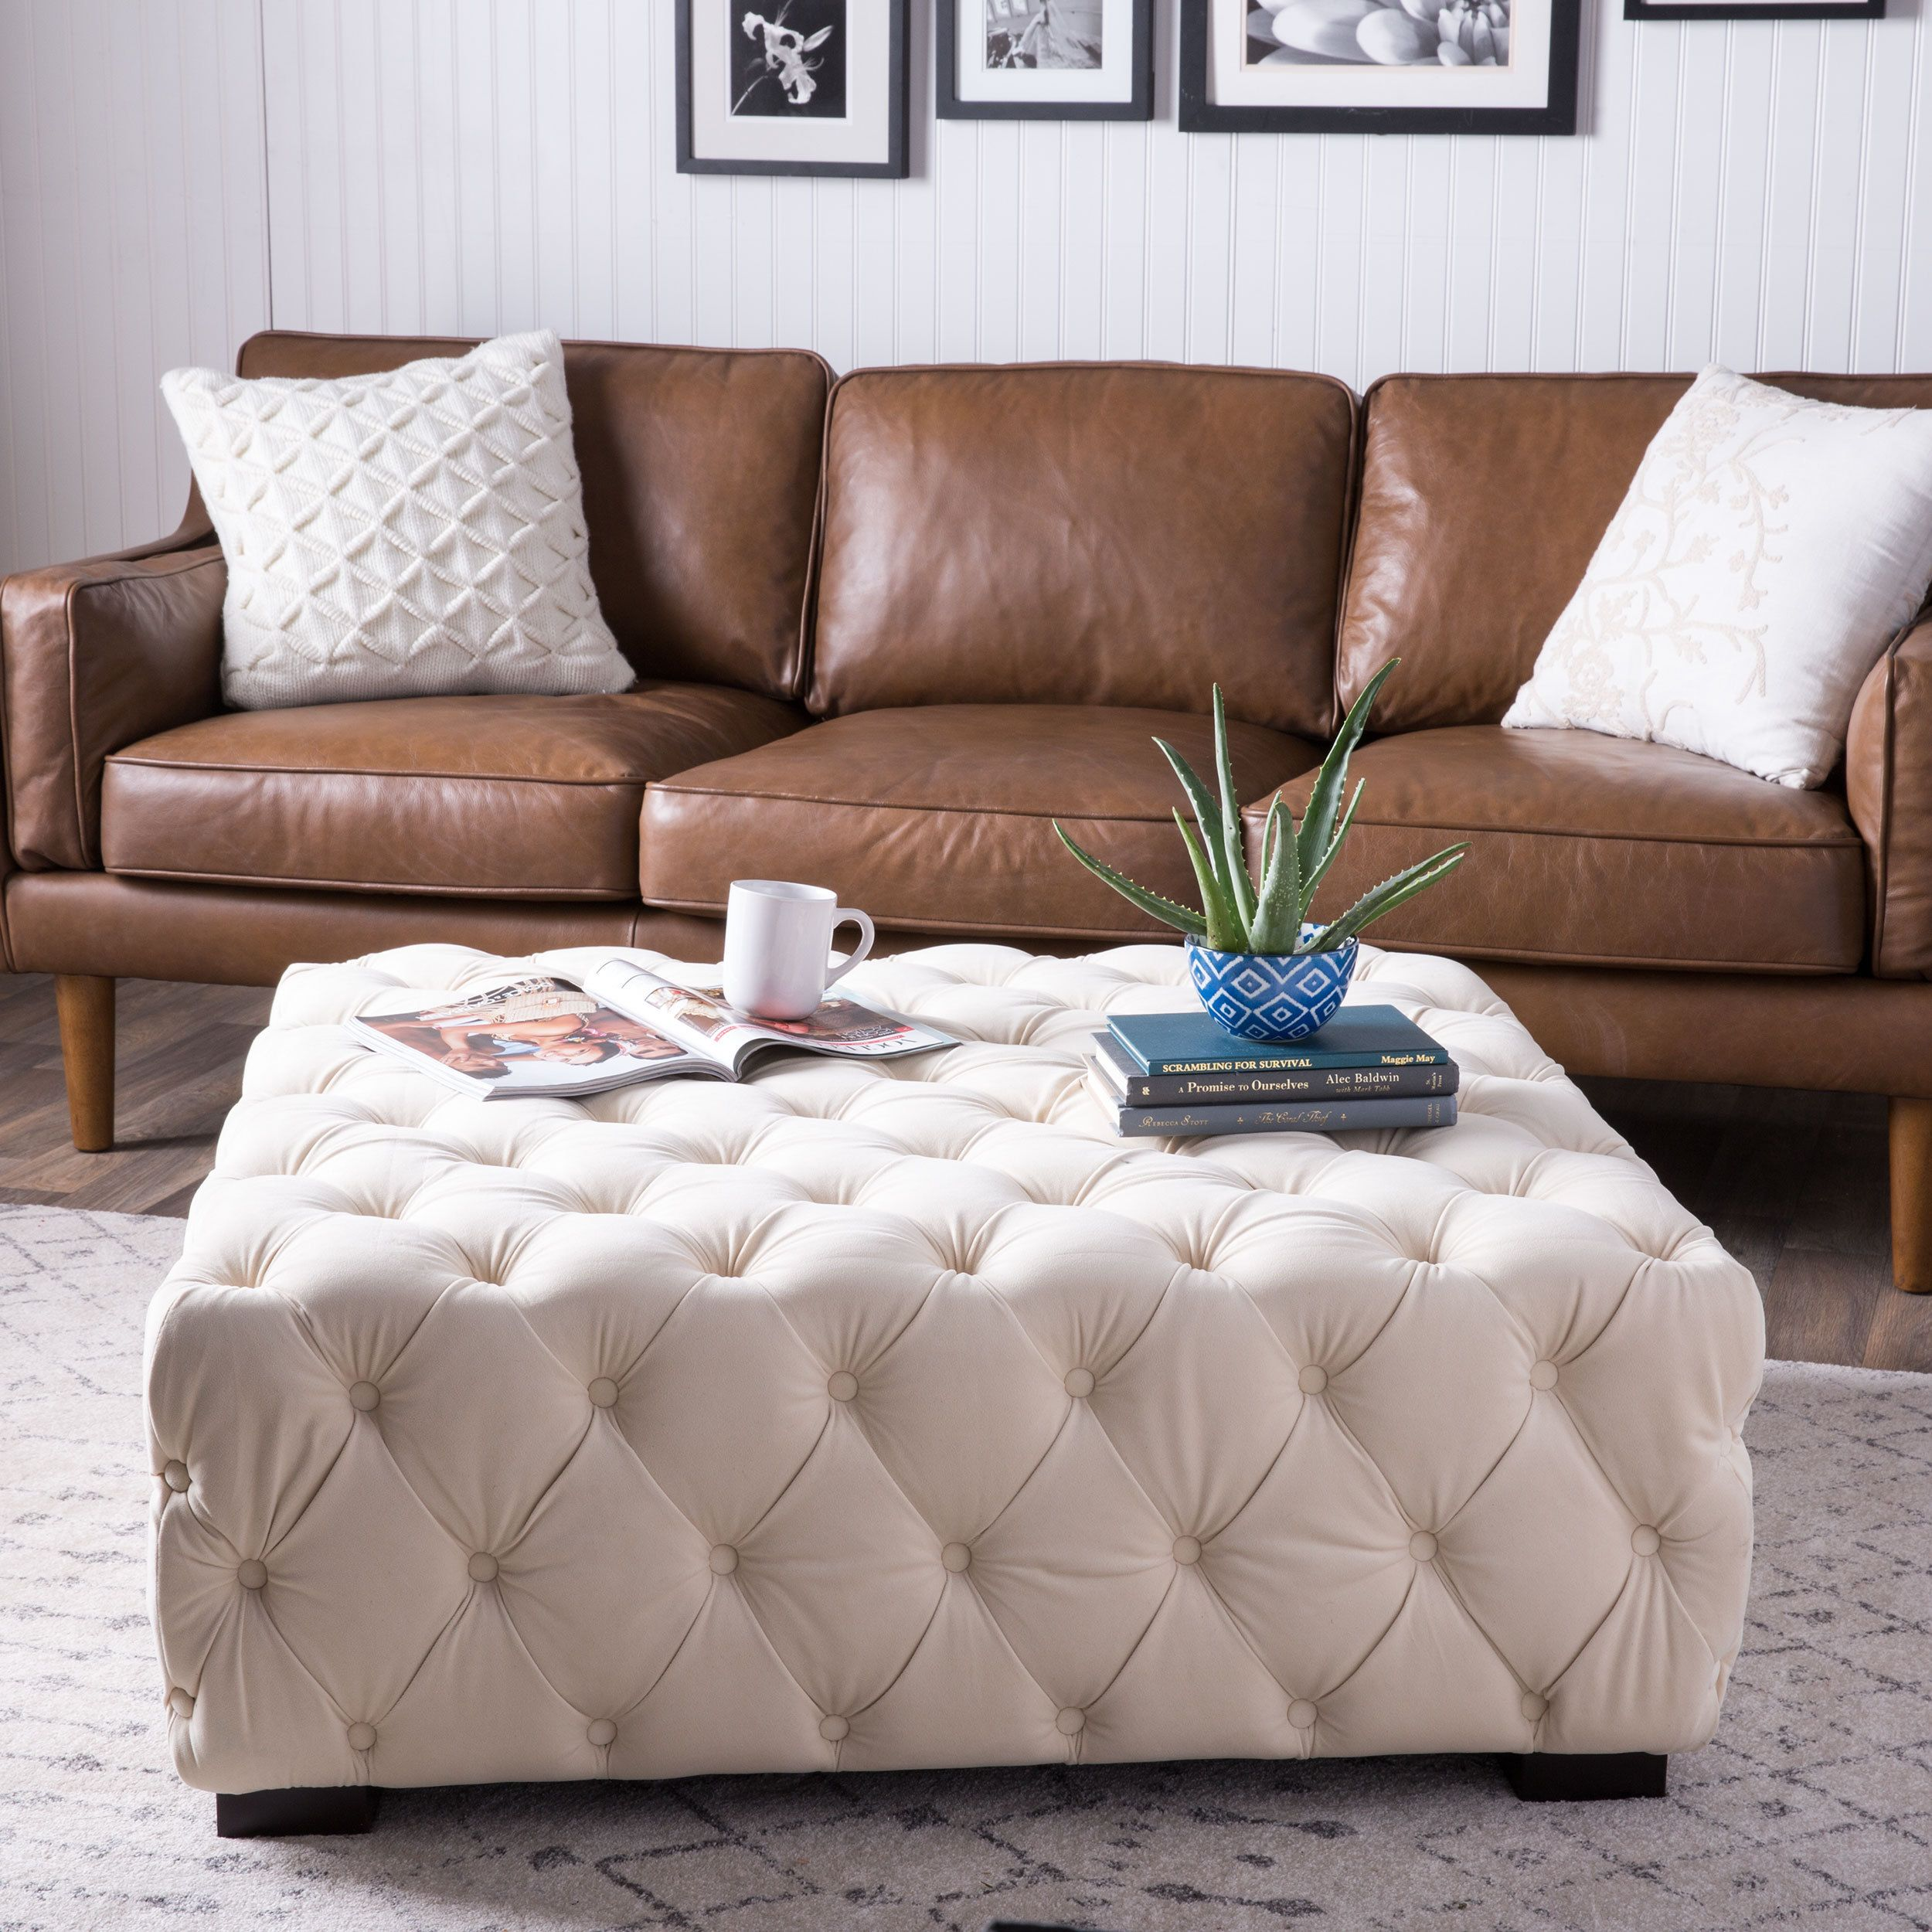 Enhance your home and living décor with the uniquely styled Juliette ...